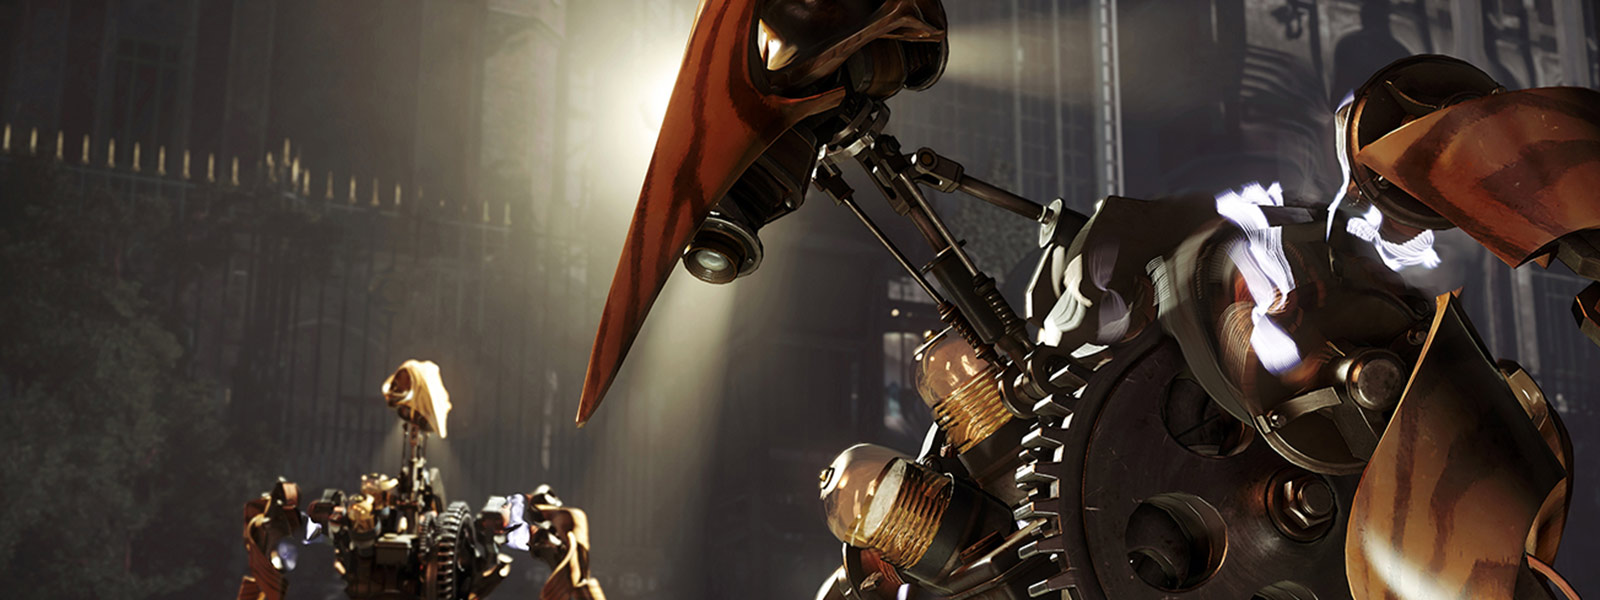 Void engine Dishonored 2 robot